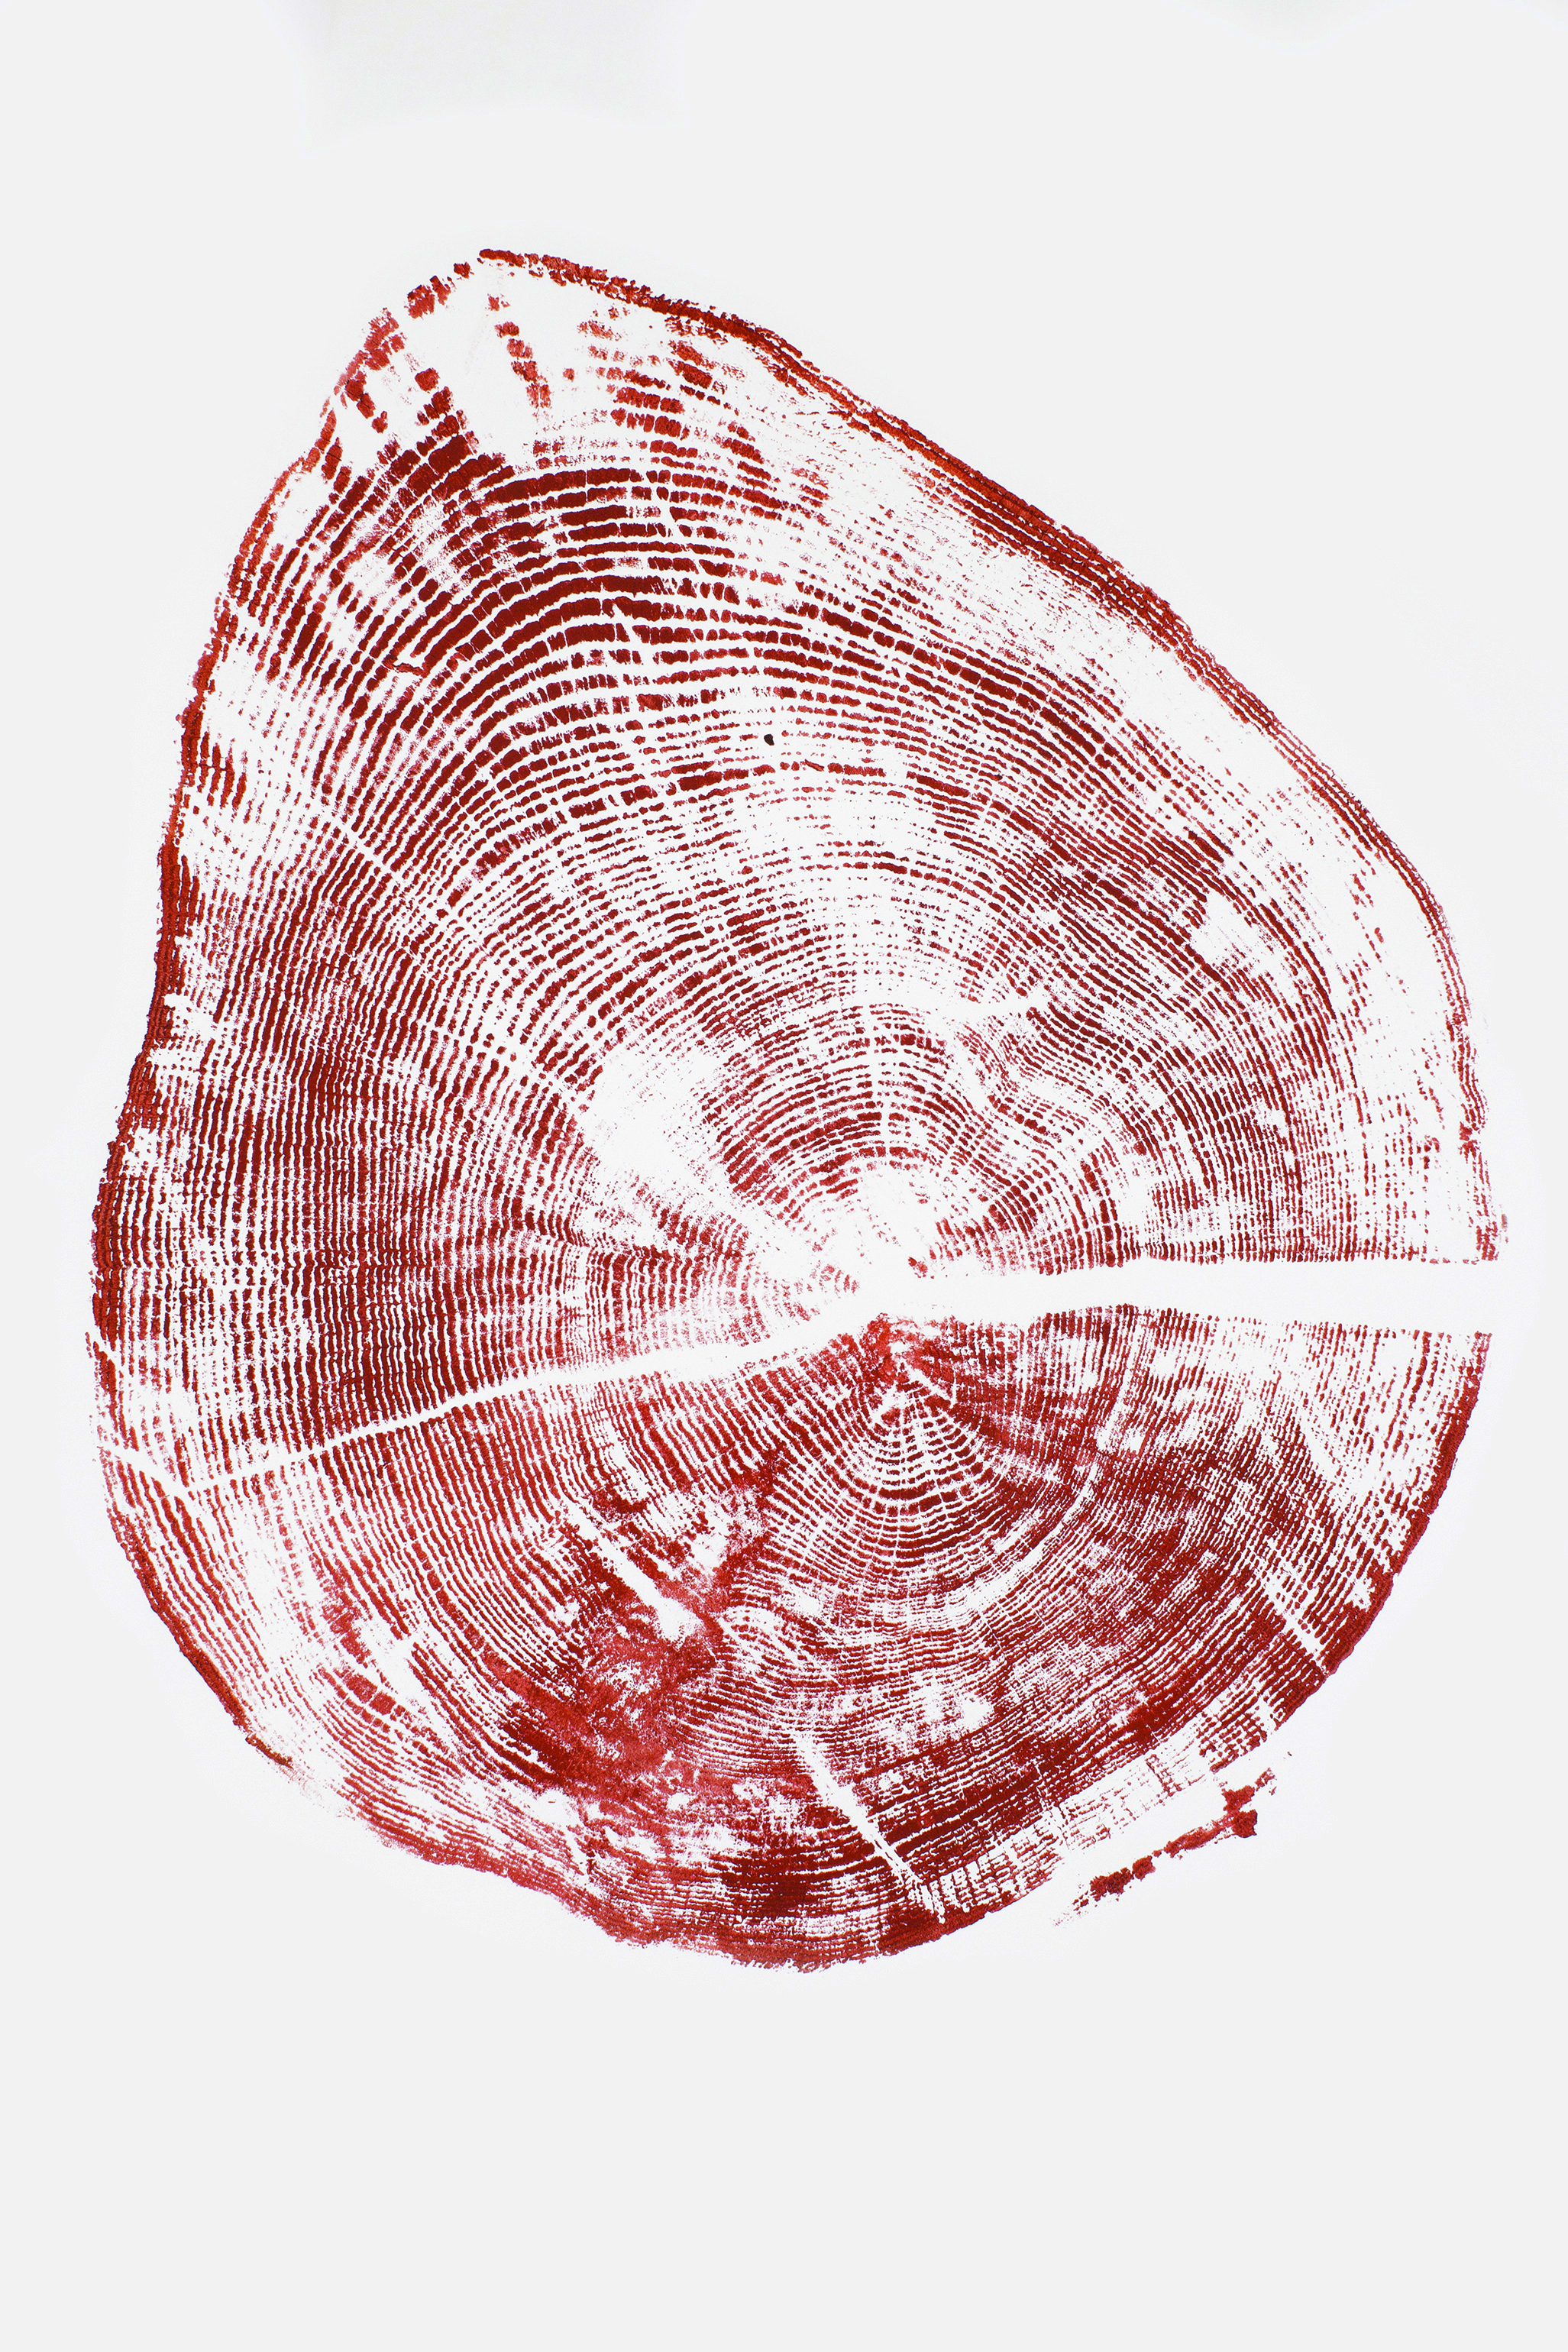 woodstumps_red copy.jpg